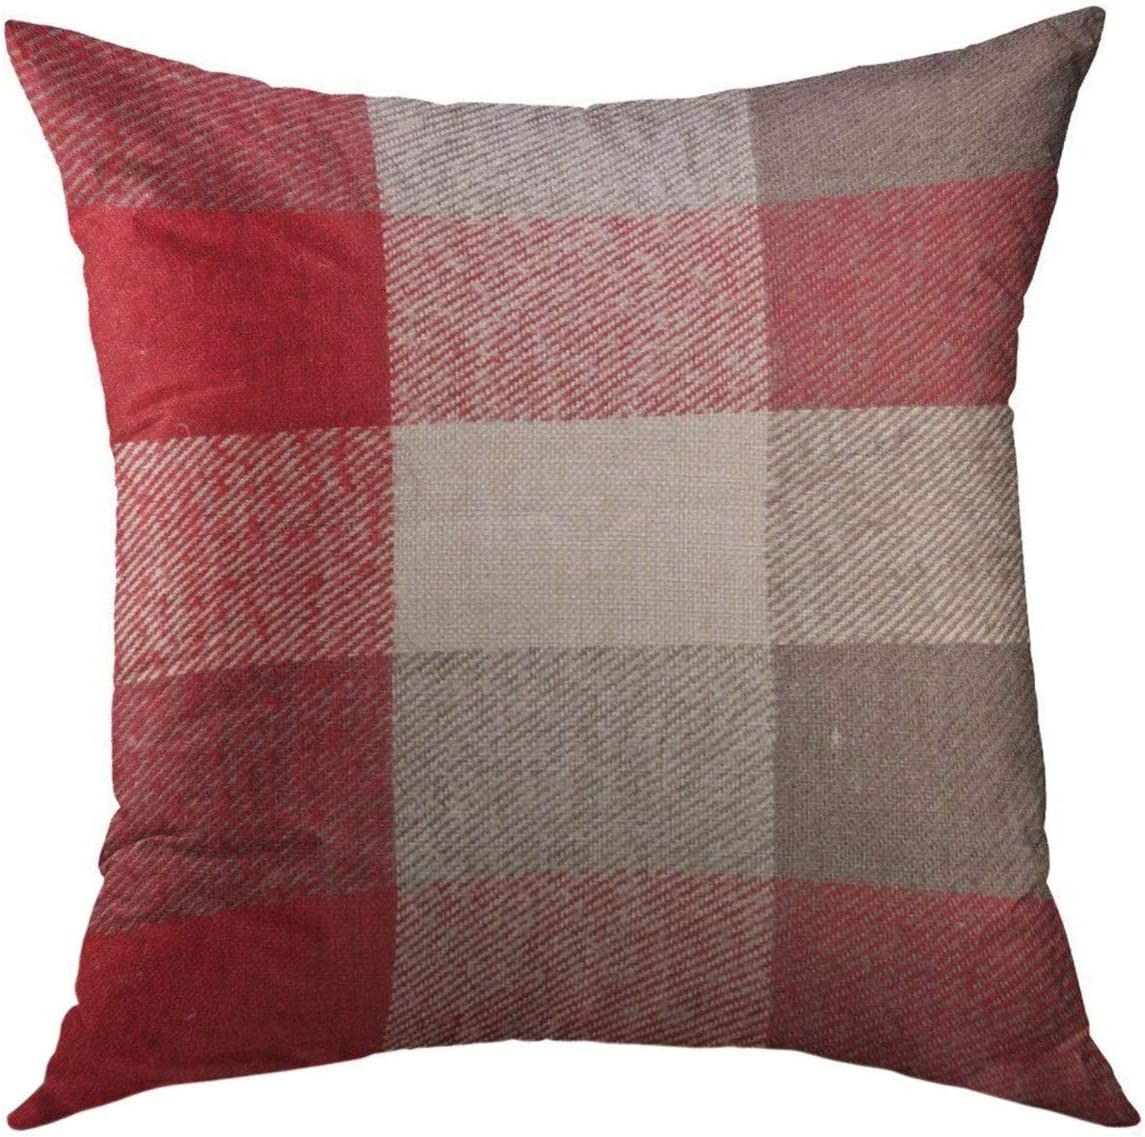 Mugod Decorative Throw Pillow Cover for Couch Sofa,Plaid Red Grey Tartan Material As Fuzzy Stripes Home Decor Pillow Case 18x18 Inch